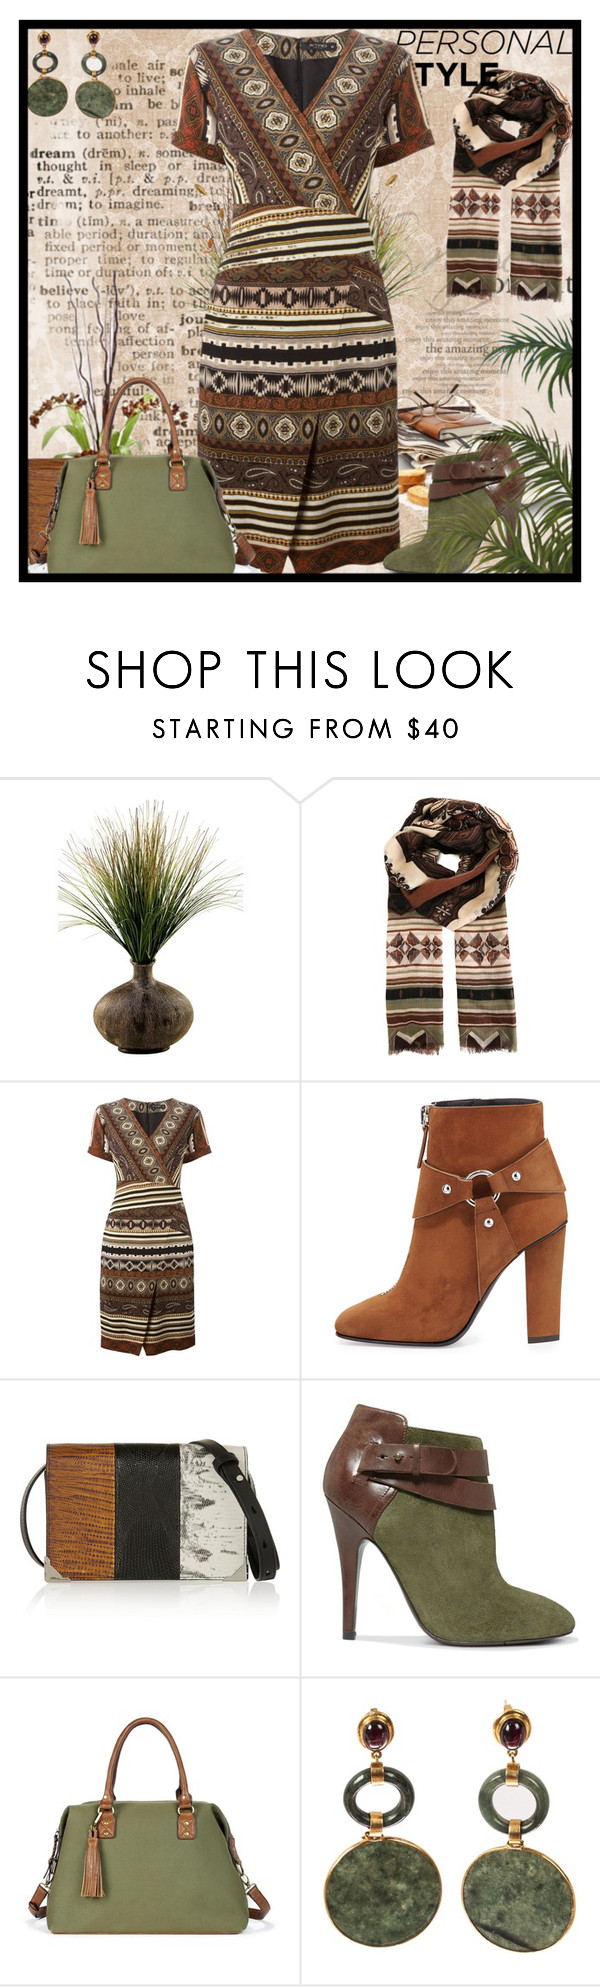 """There's a way to do it better - find it."" by han-pal ❤ liked on Polyvore featuring Etro, Distinctive Designs, Giuseppe Zanotti, Alexander Wang, Nine West, Sole Society, women's clothing, women's fashion, women and female"